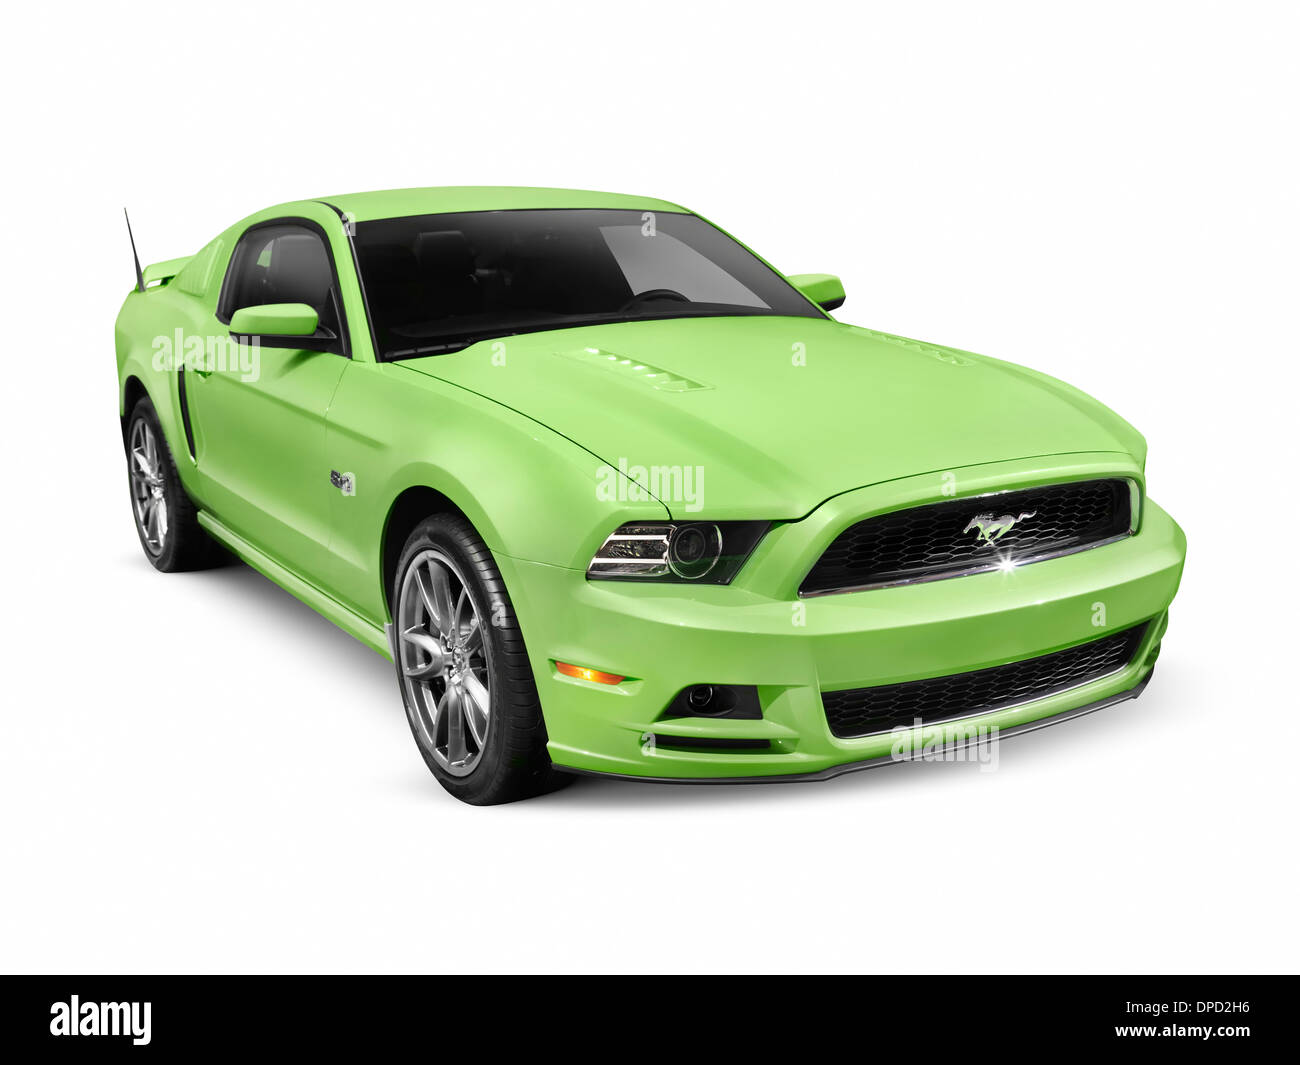 Green 2013 Ford Mustang GT 5.0 sports car isolated on white background with clipping path - Stock Image